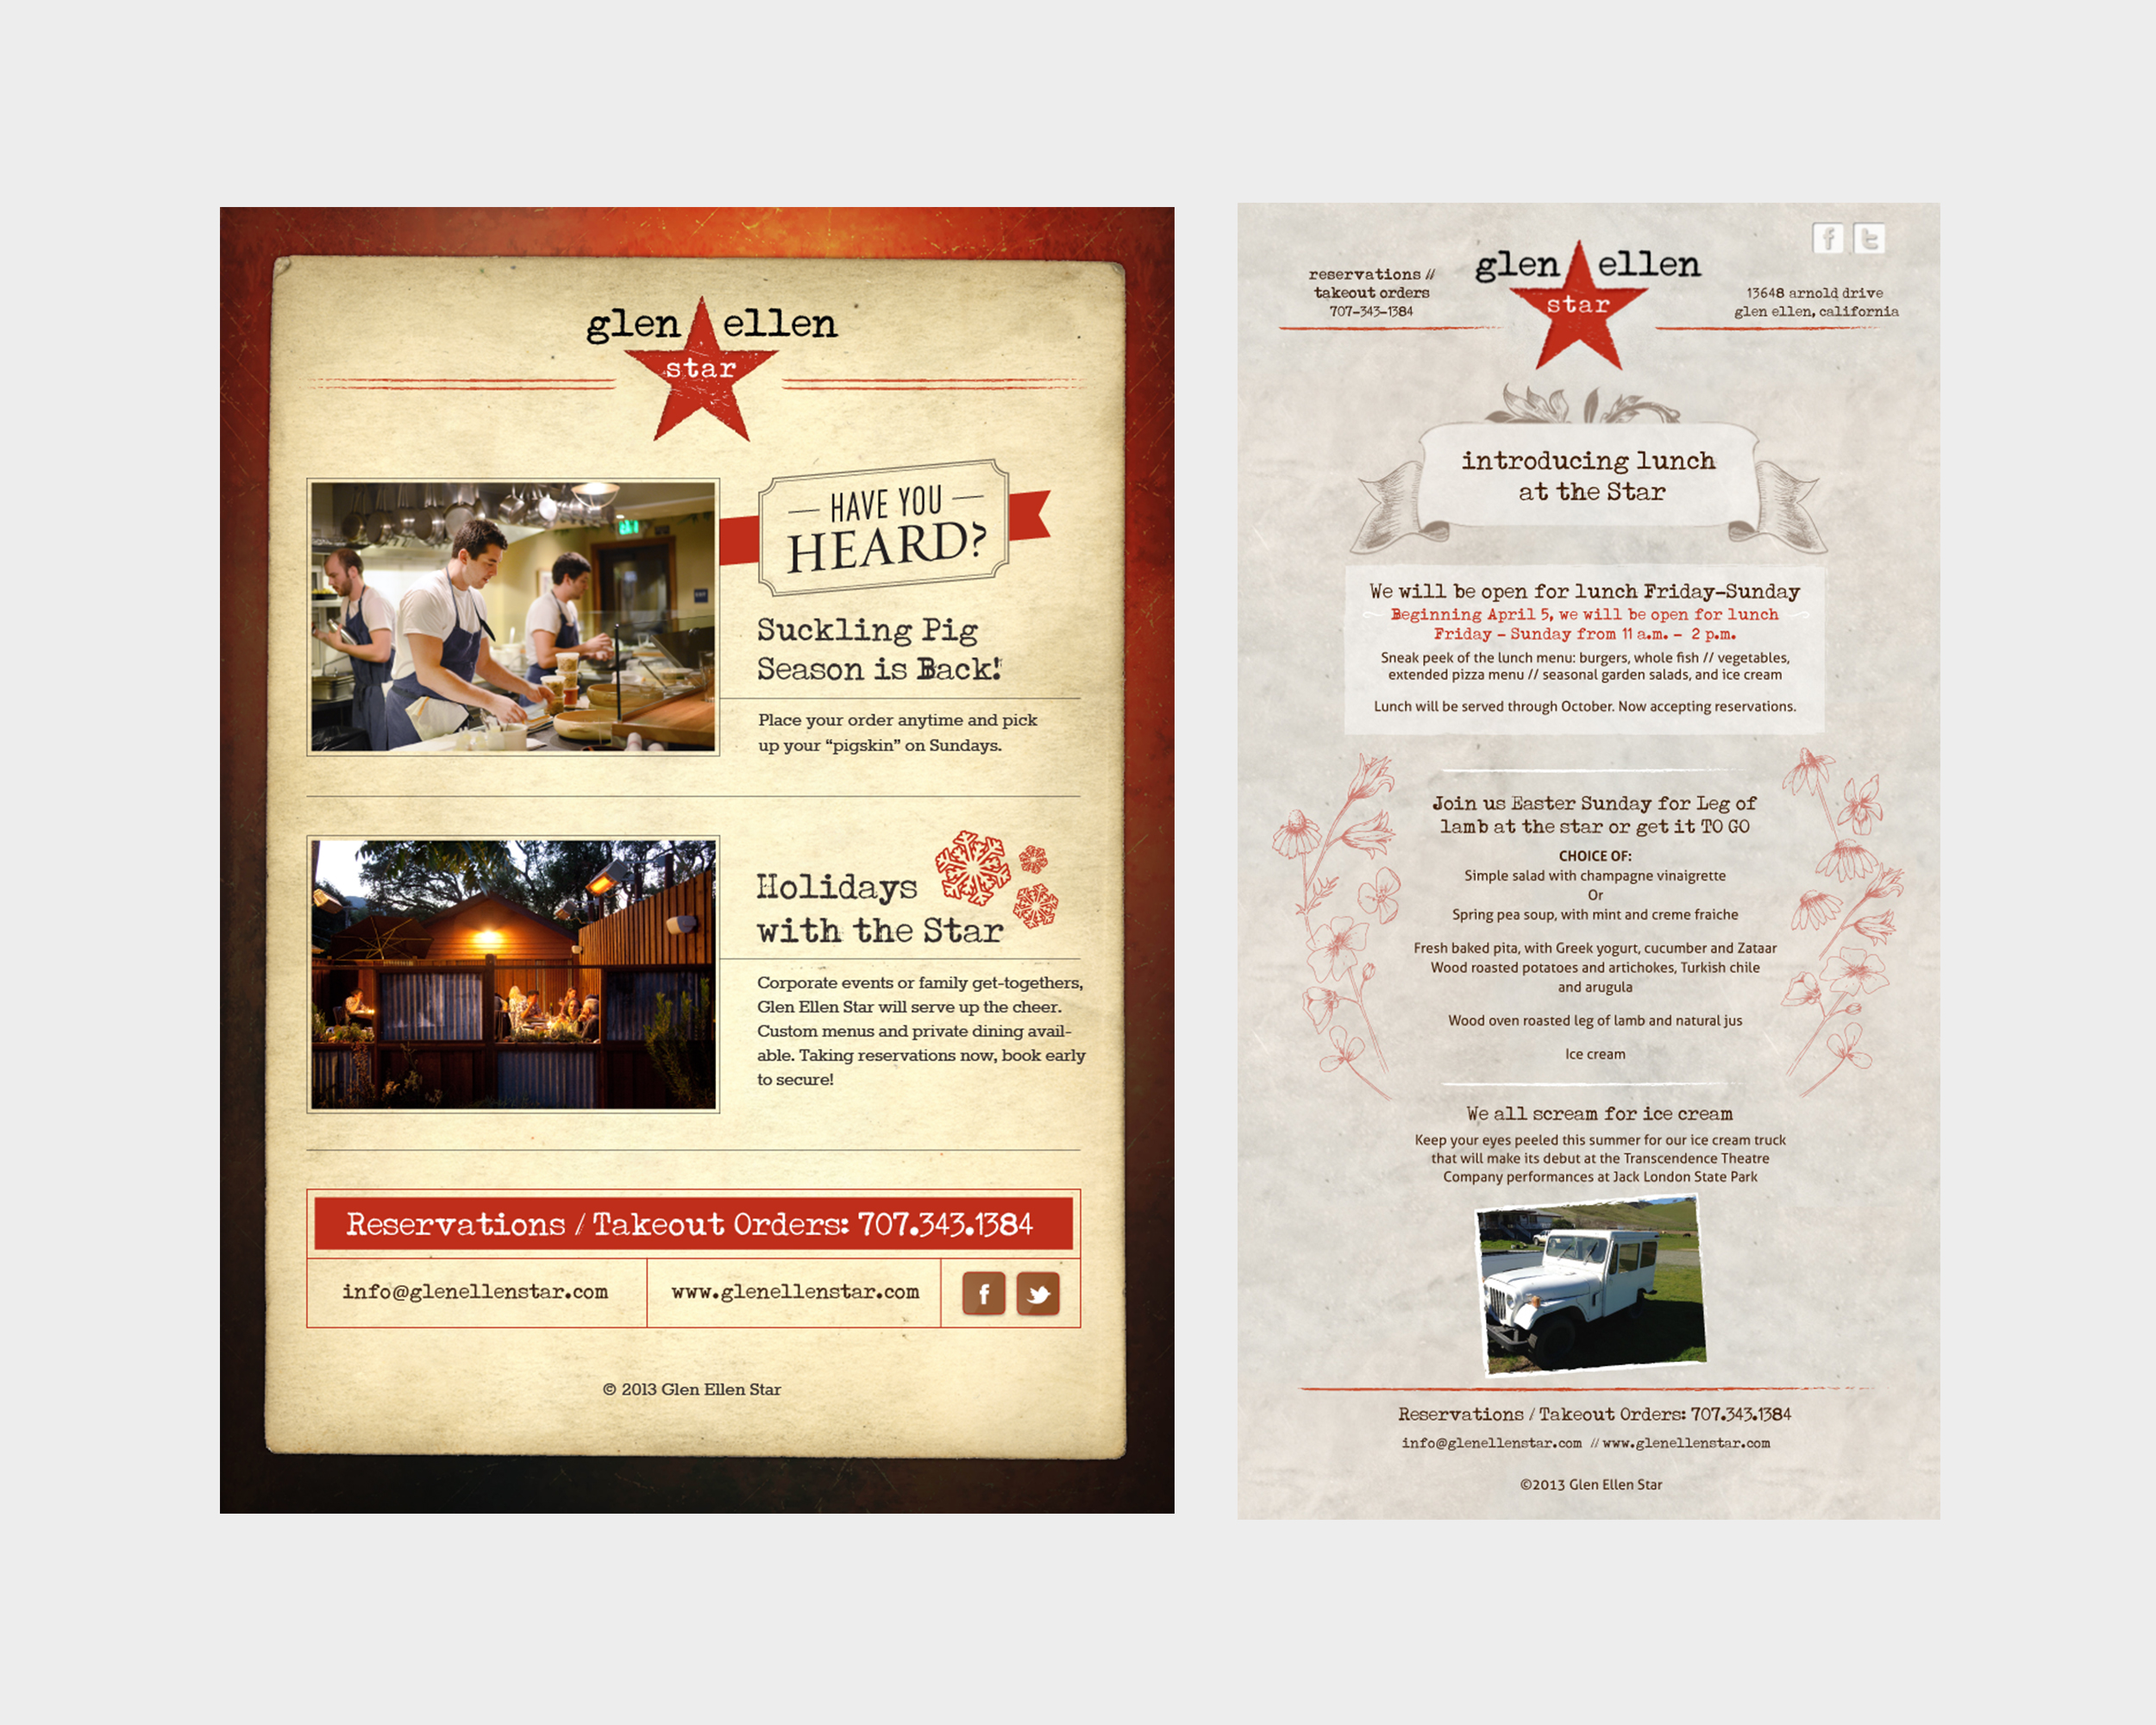 Glen Ellen Star Email Blasts